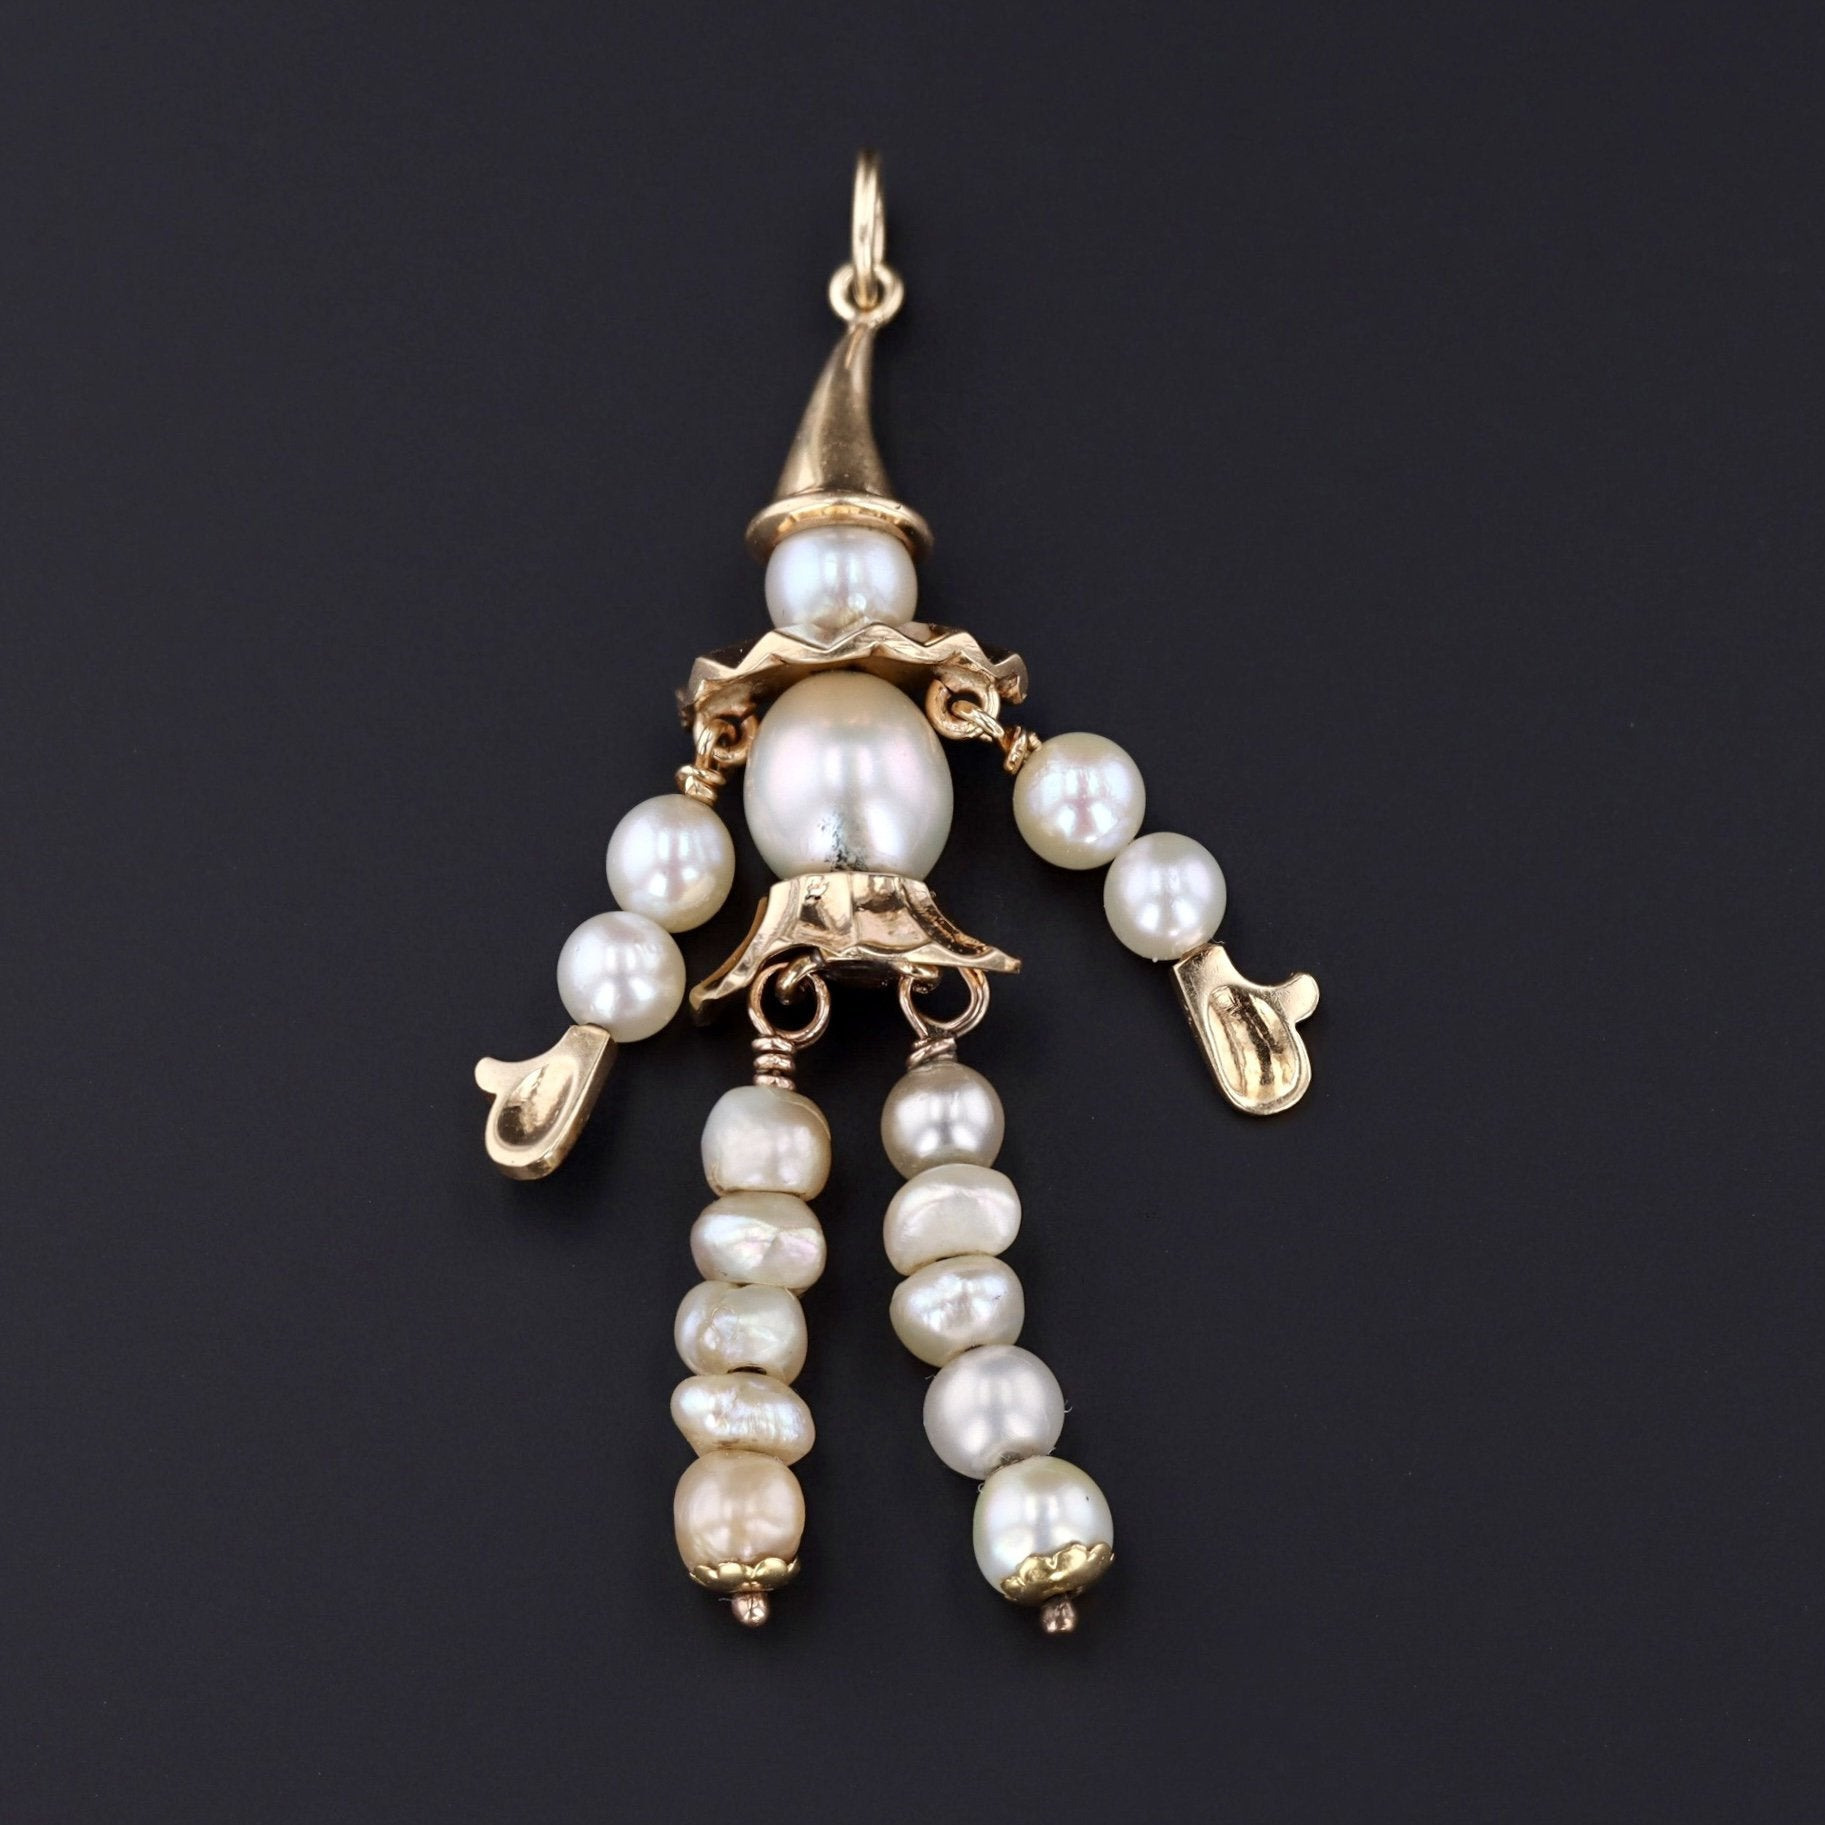 Clown Pendant | 14k Gold & Pearl Pendant | Moveable Clown Pendant | Vintage Pendant